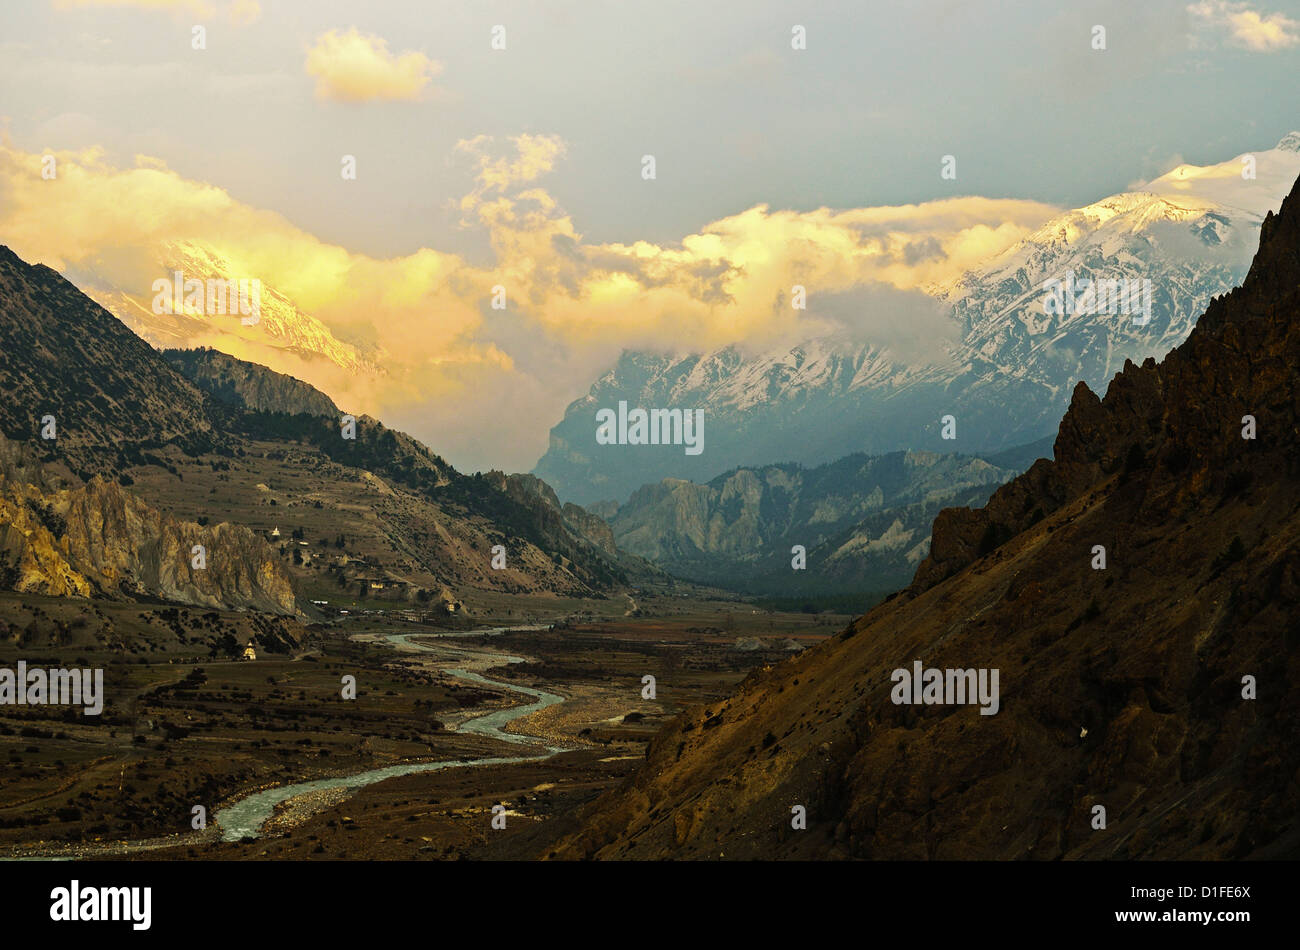 Marsyangdi River Valley and Annapurna Himalayan Range, Annapurna Conservation Area, Gandaki, Western Region, Nepal - Stock Image